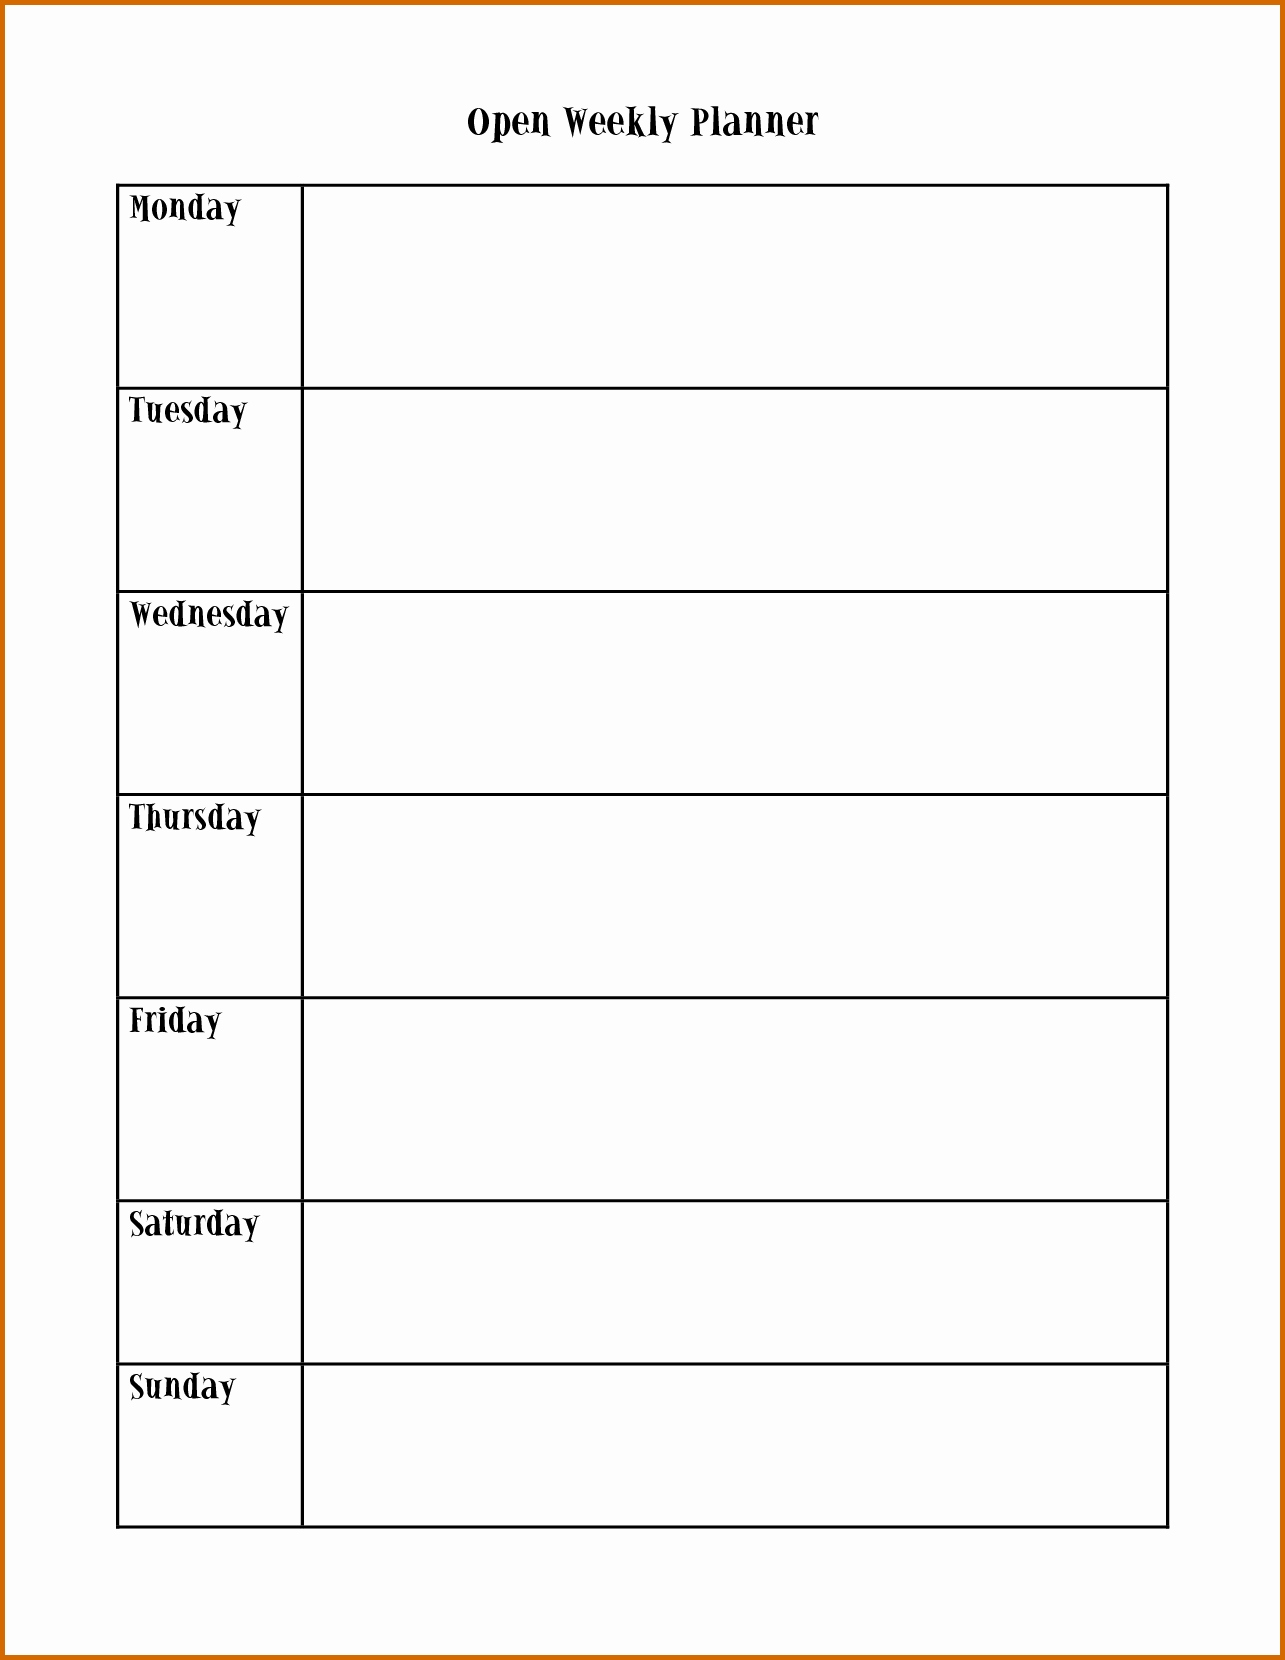 Schedule Plate Monday Through Friday Weekly Calendar Word | Smorad for Printable Weekly Calendar Monday Through Friday